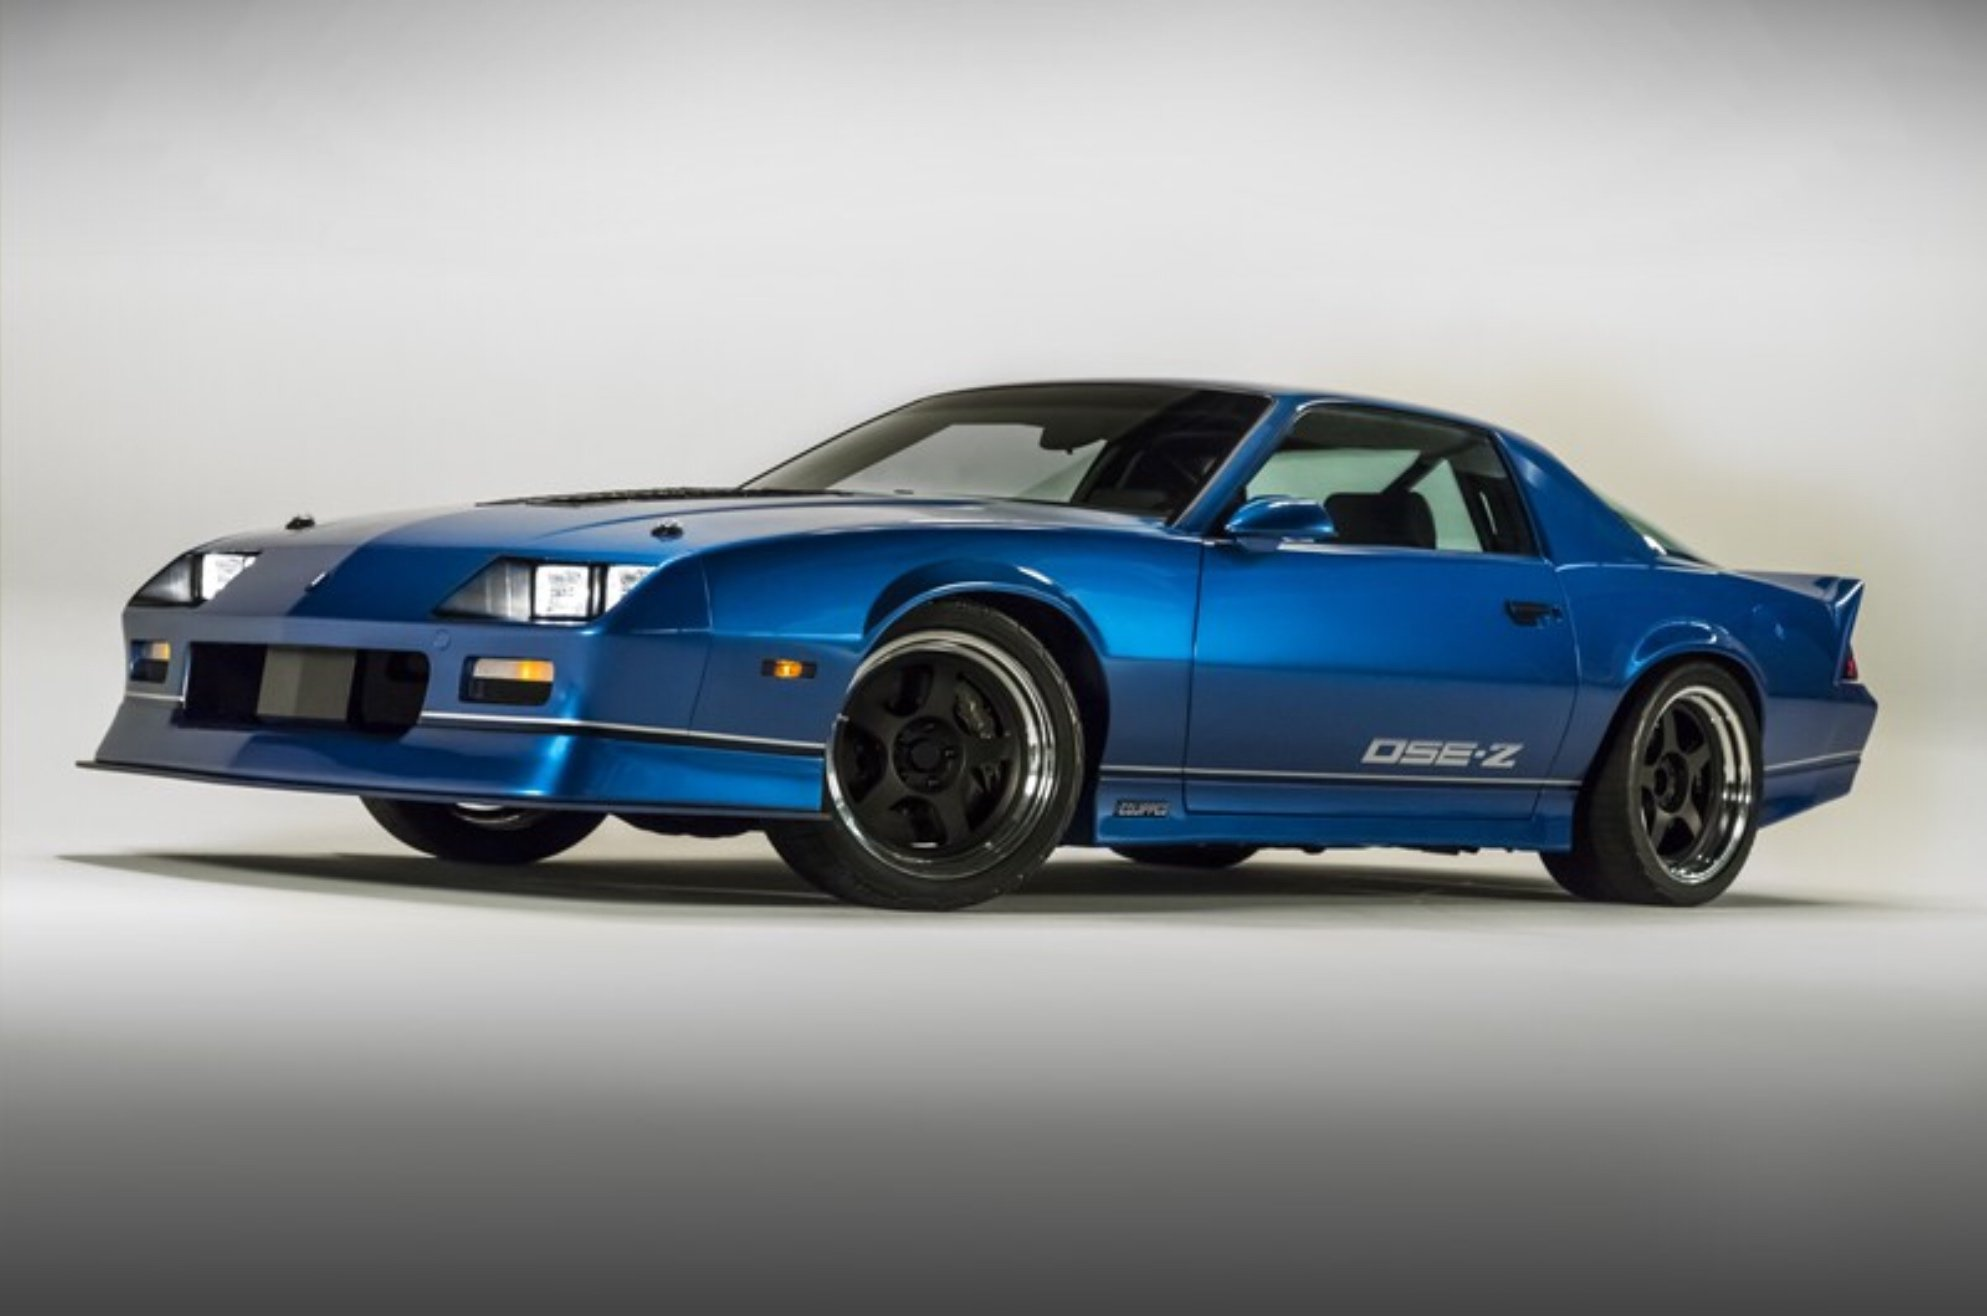 New Chevy Cars >> Detroit Speed IROC Camaro DSE-Z Hits the Track